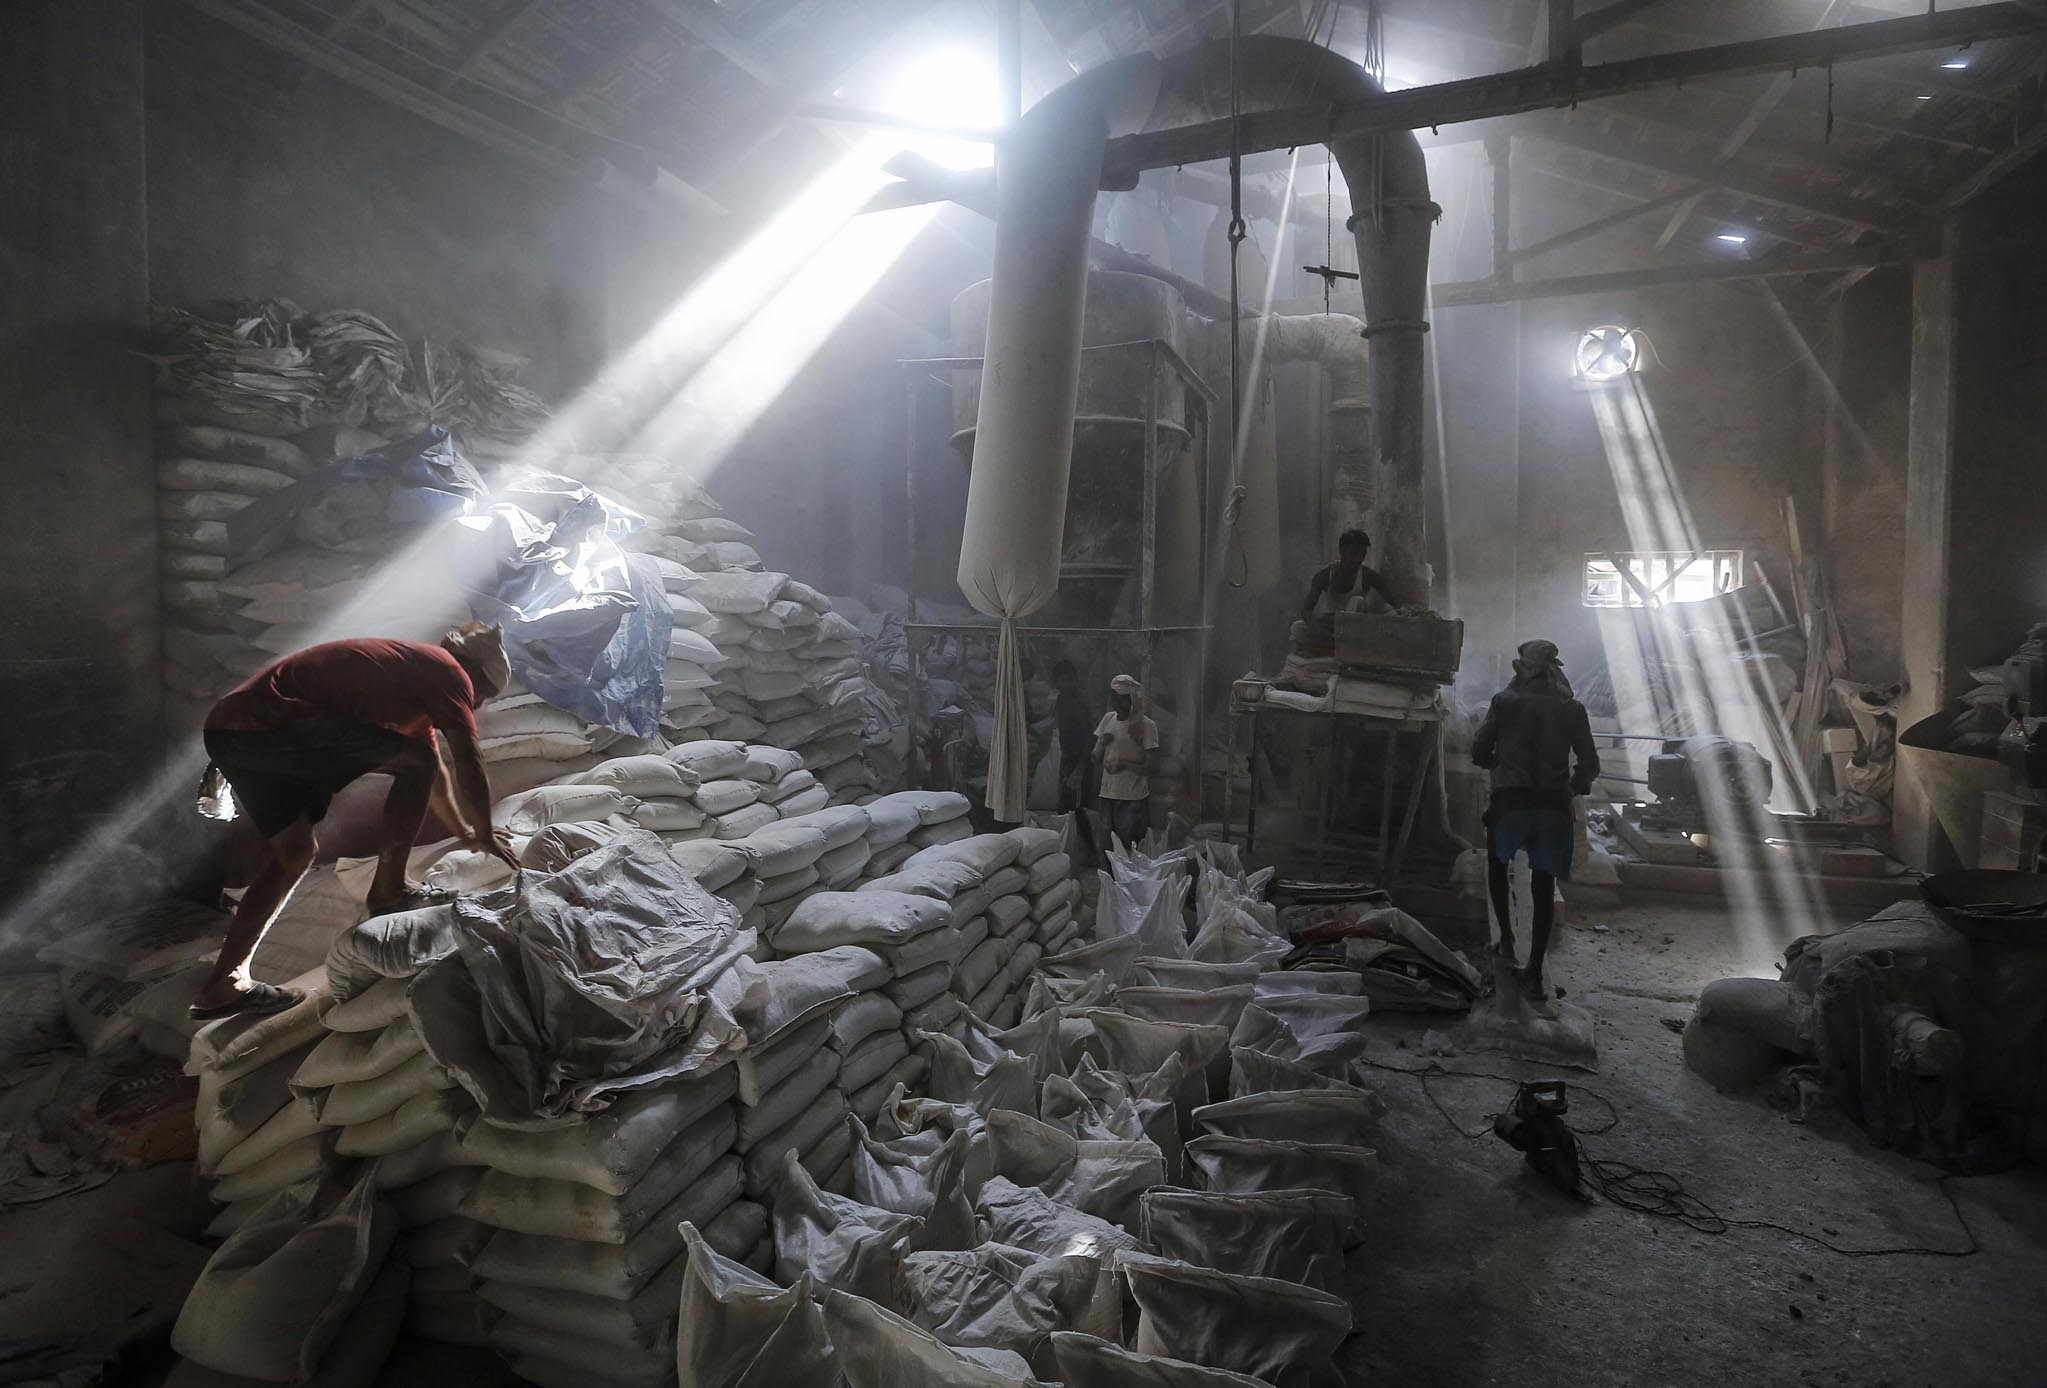 Employees work inside a limestone powder factory in an industrial area in Mumbai